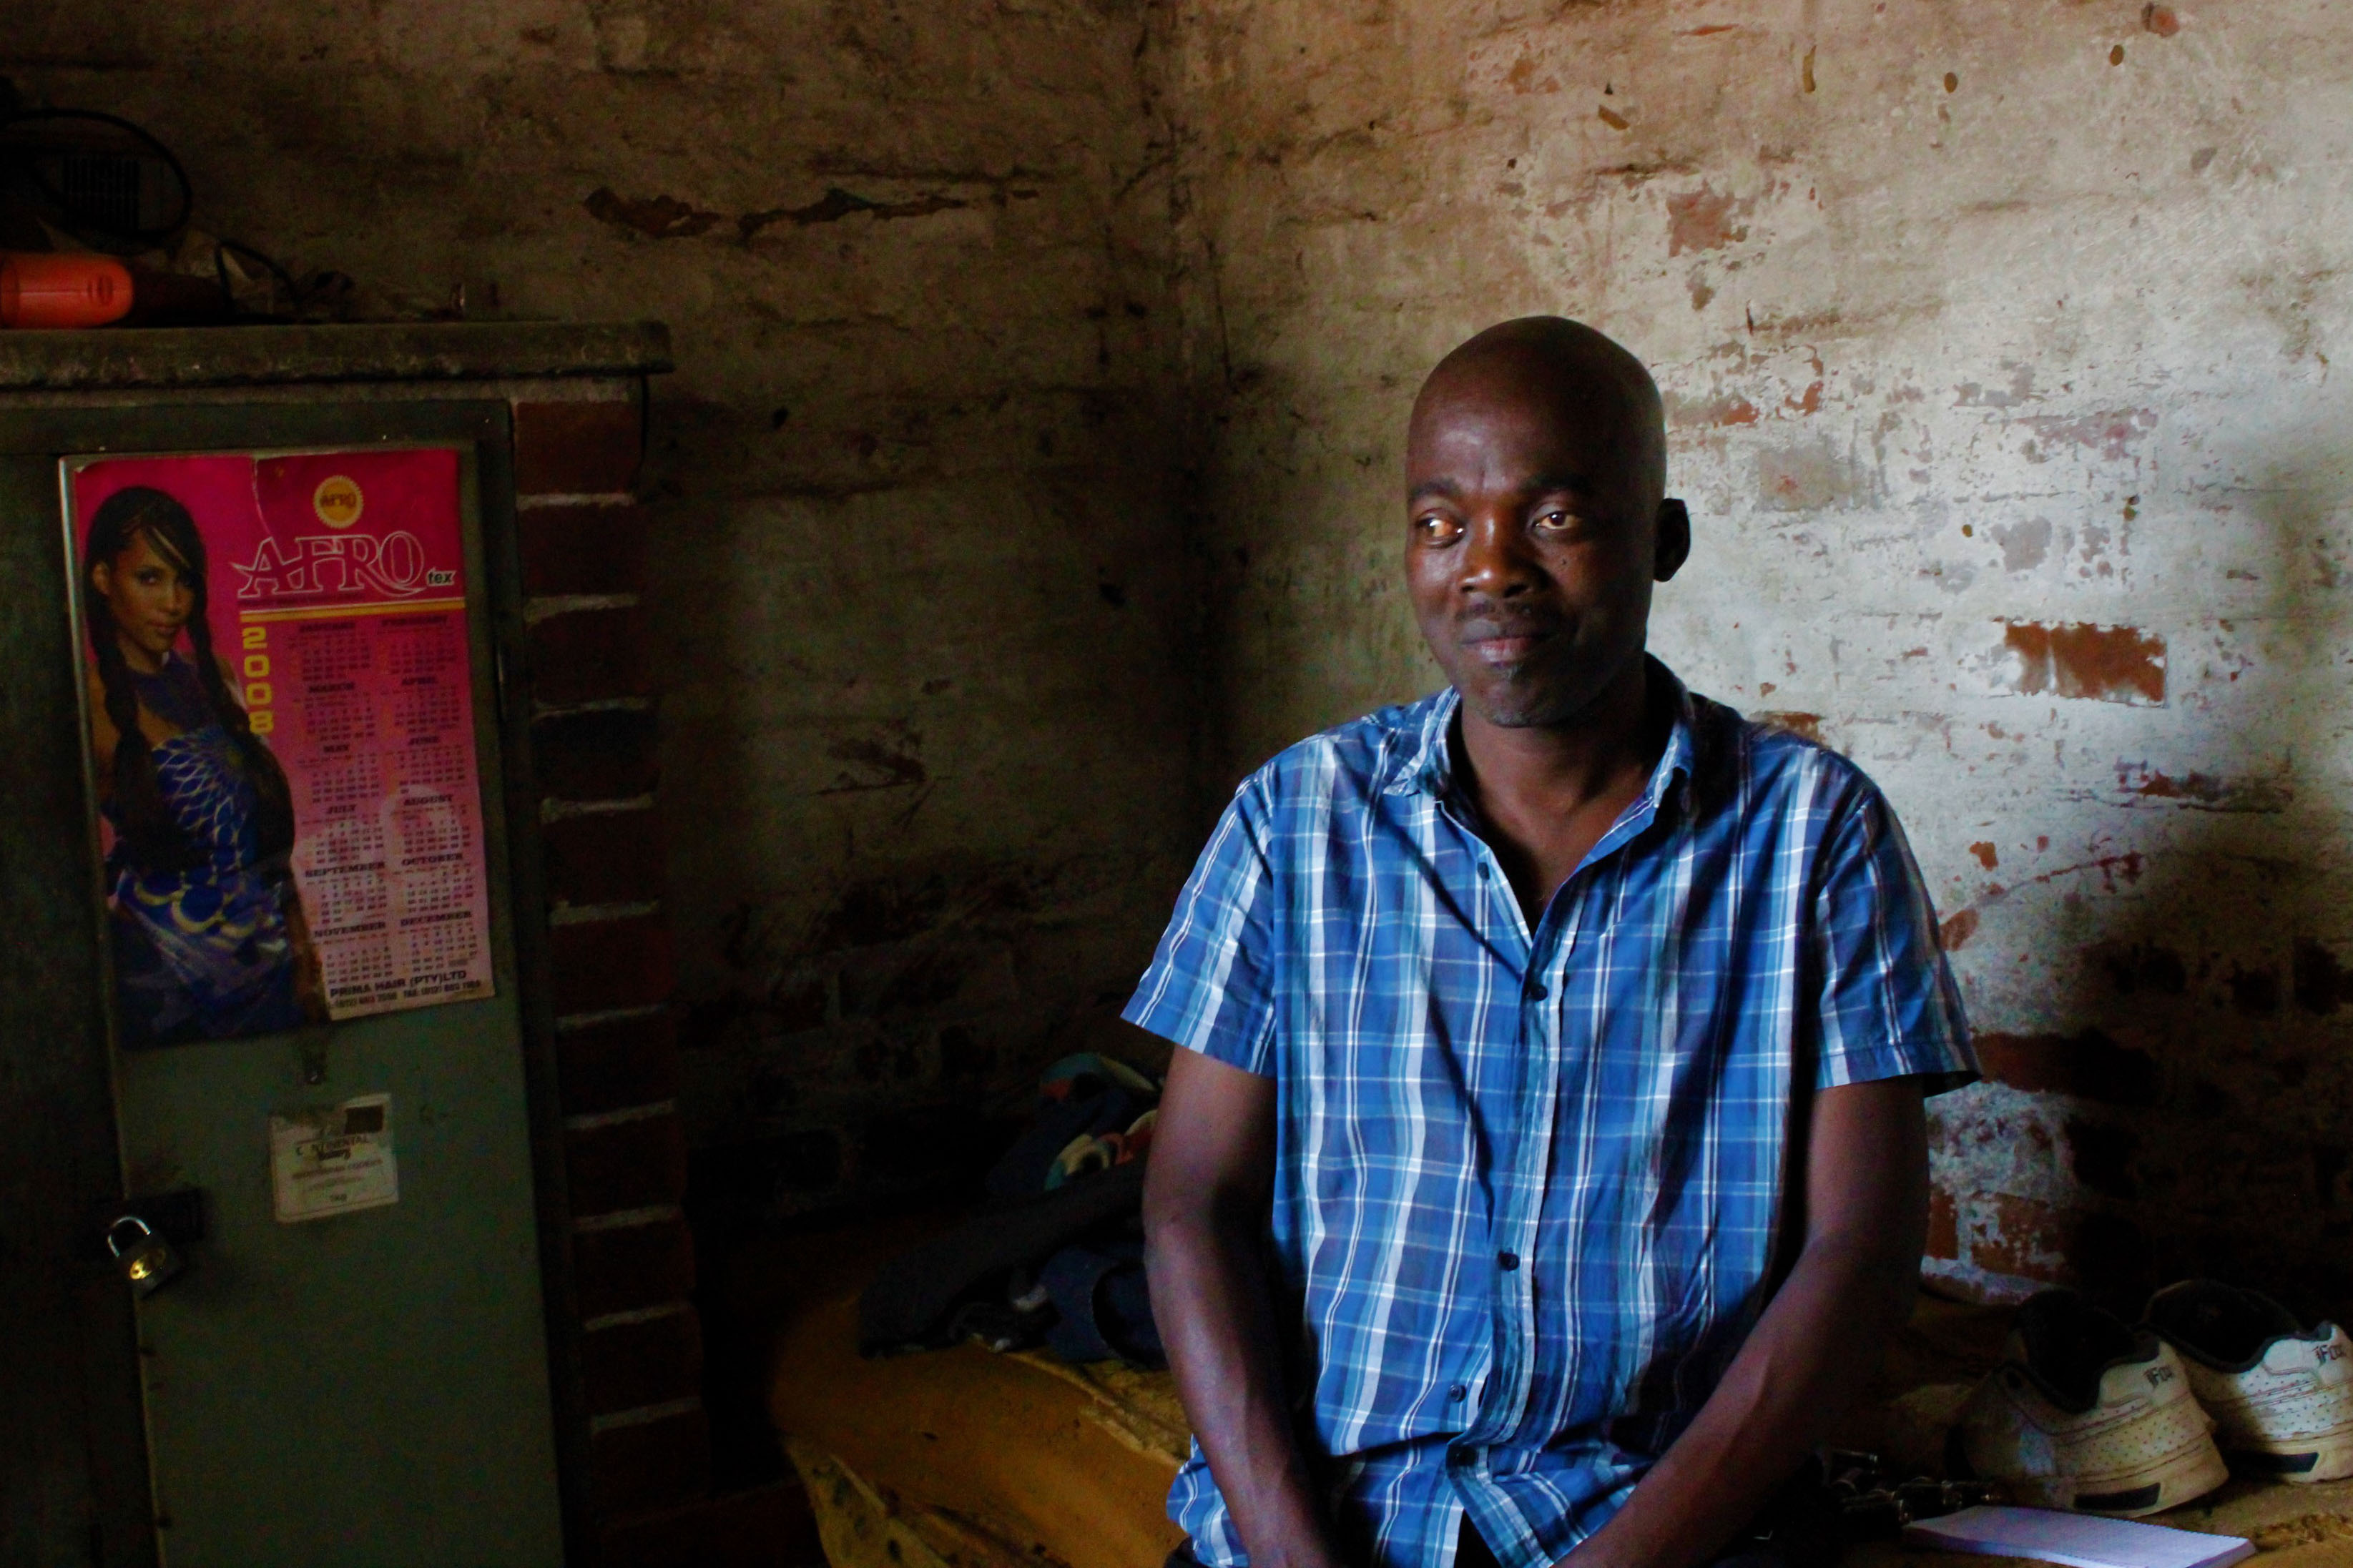 17 October 2019: Muziwokuthula Ngidi, 54, has been a resident at KwaMashu Hostel for 30 years. His father also came to the hostel to find work.